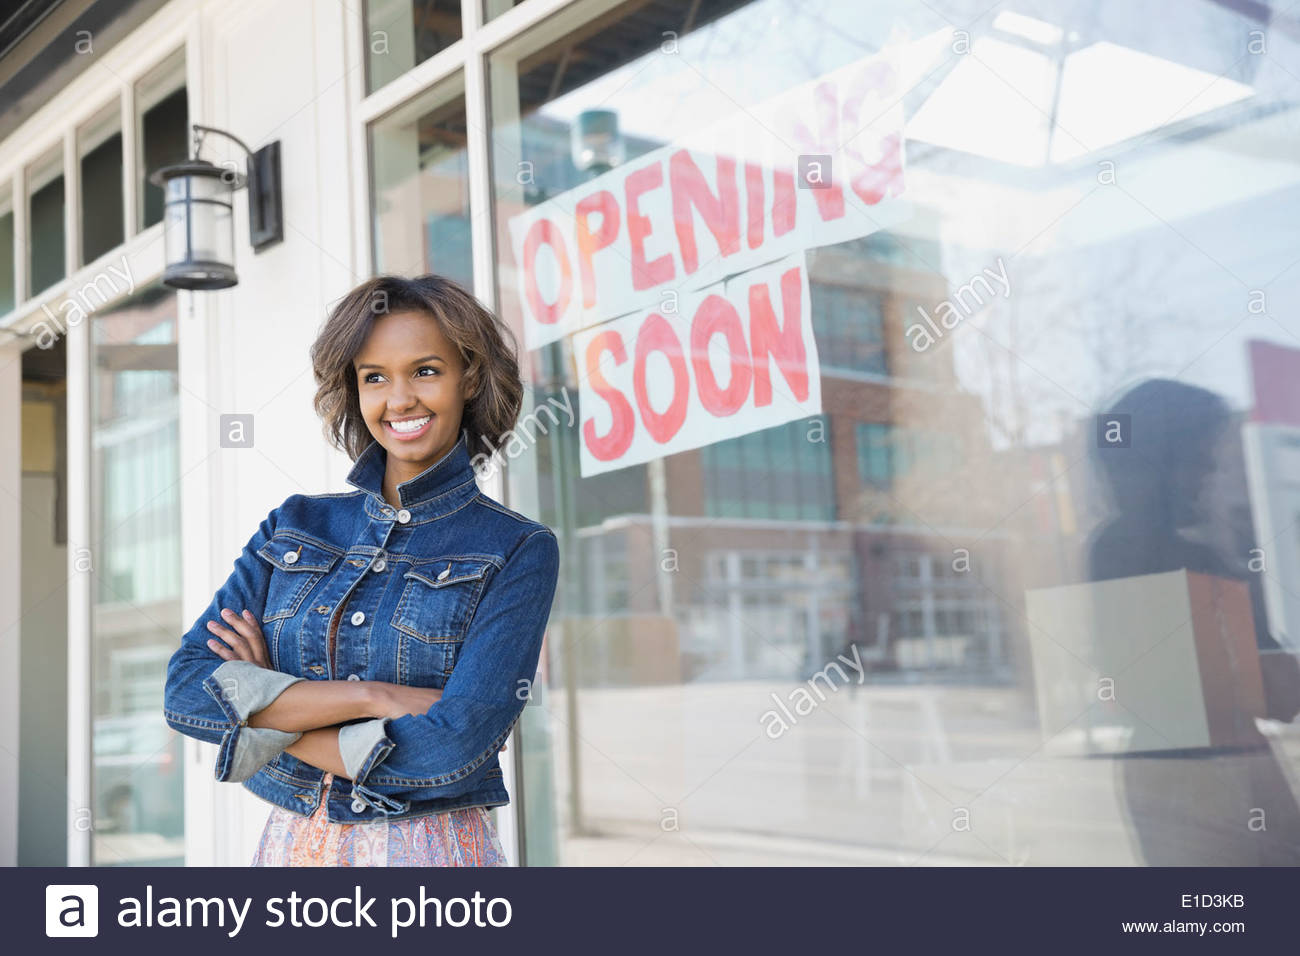 Business owner standing at new storefront - Stock Image